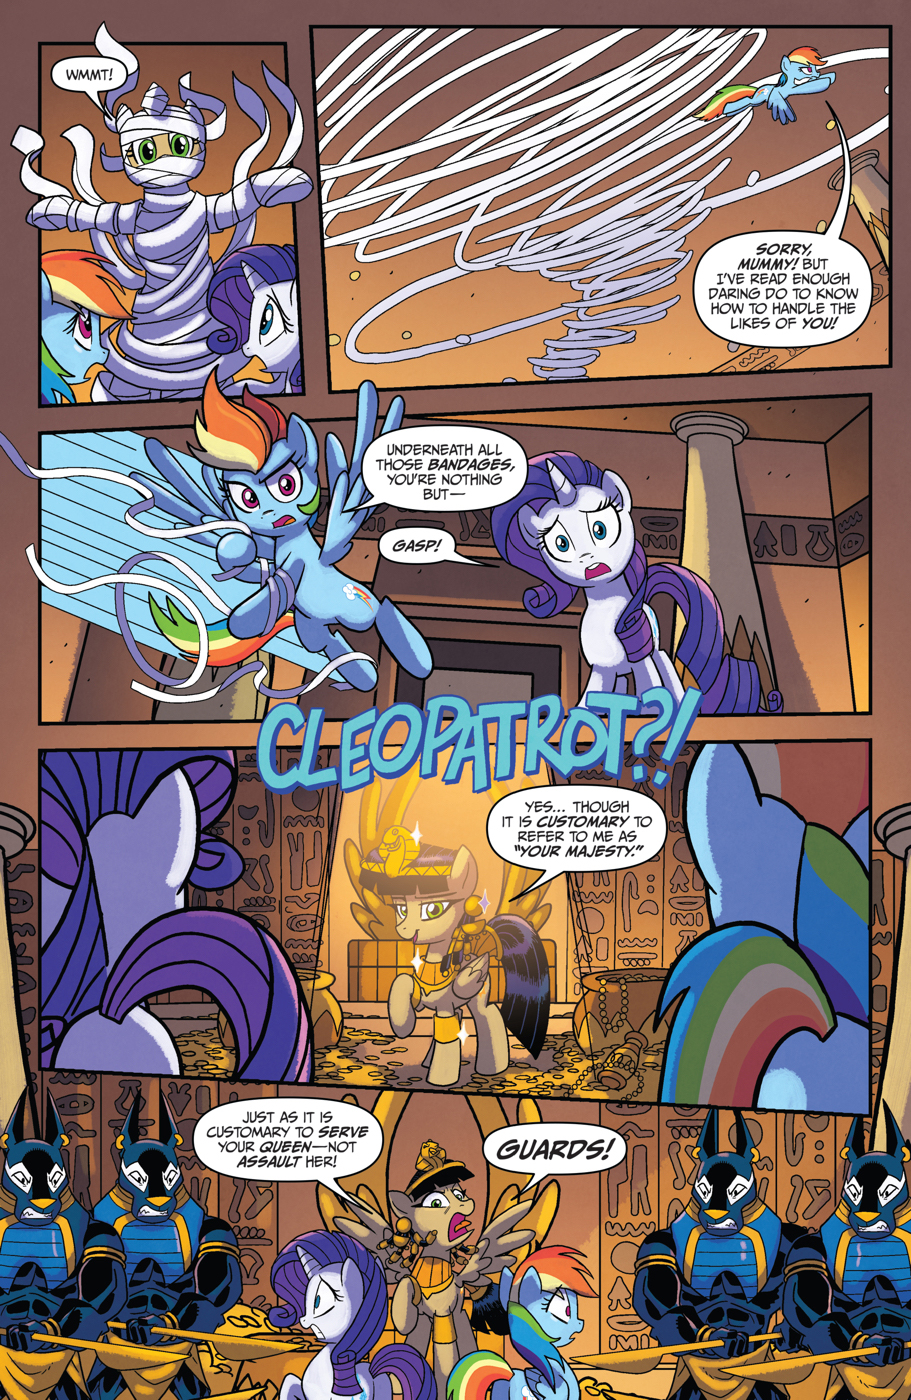 Read online My Little Pony: Friendship is Magic comic -  Issue #53 - 11